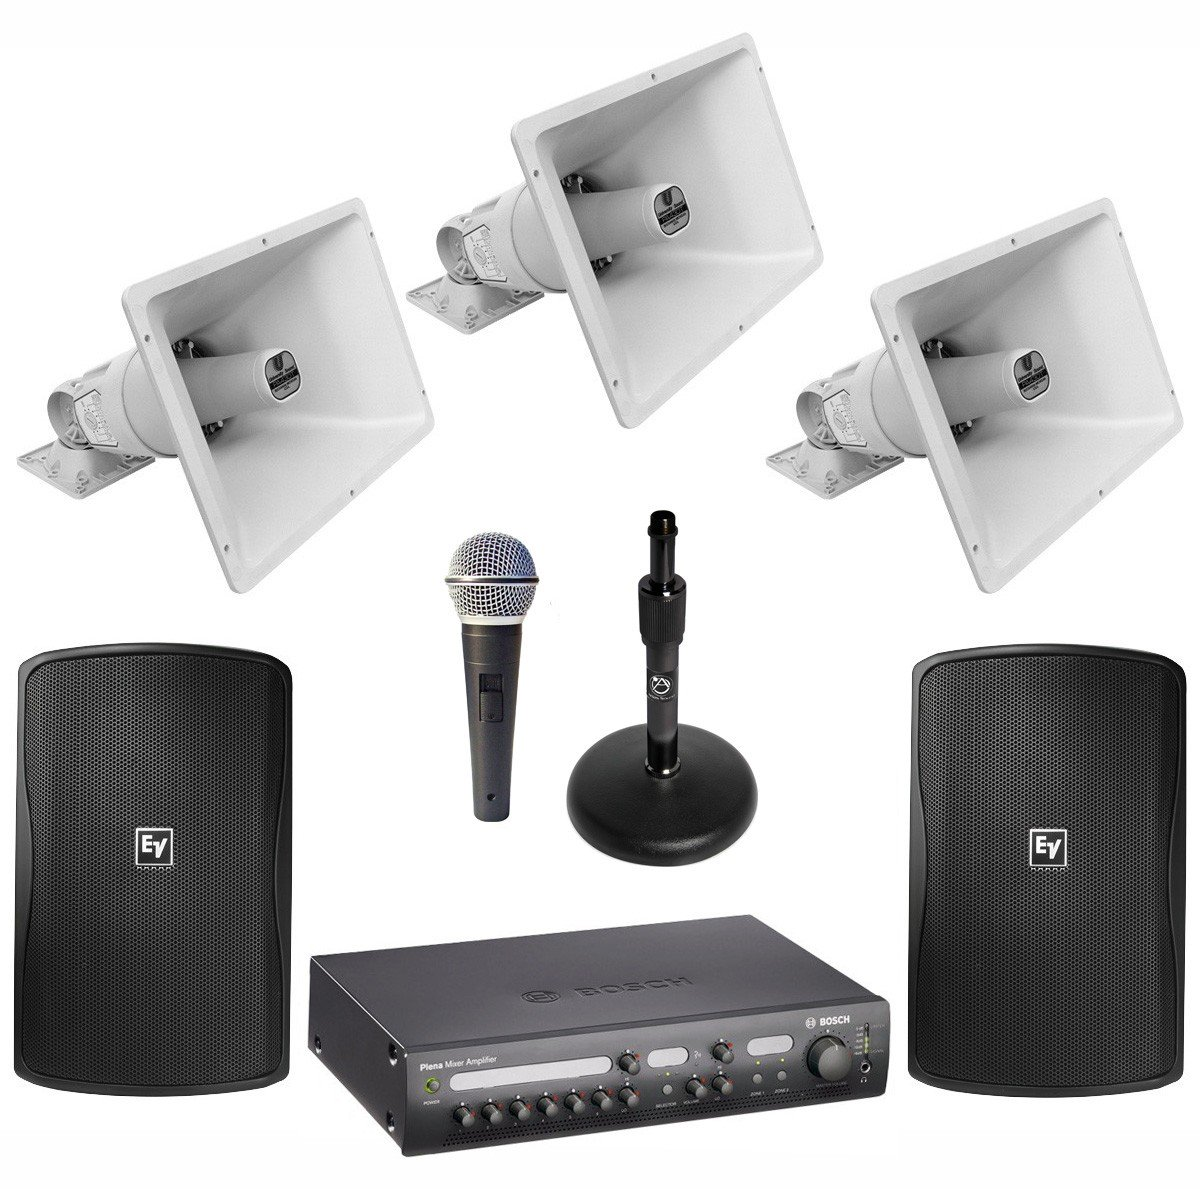 stadium sound system with 3 electro voice paging horns 2 loudspeakers and bosch plena mixer. Black Bedroom Furniture Sets. Home Design Ideas